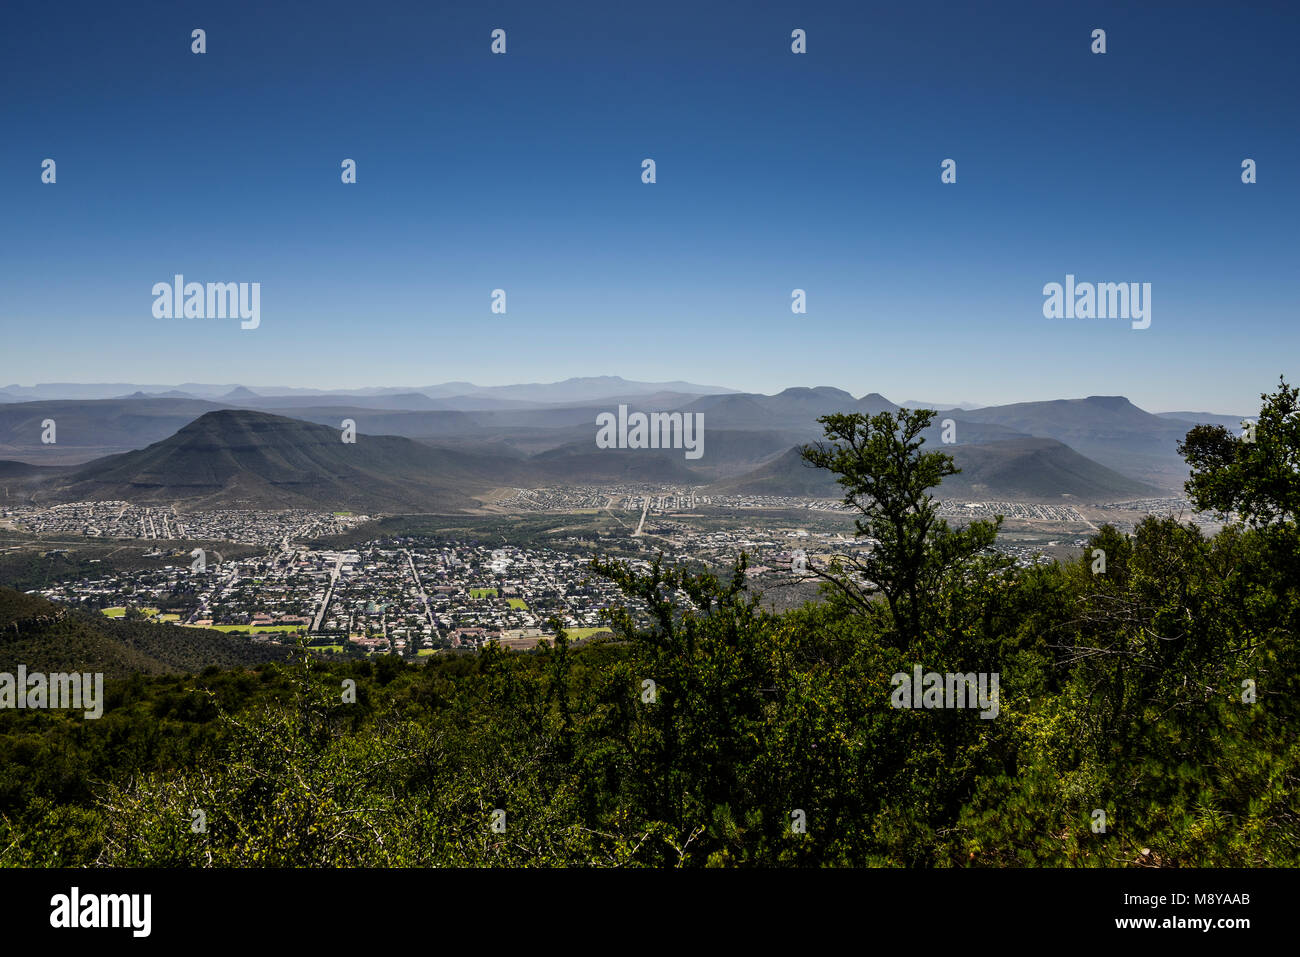 A View of Graaff-Reinet, South Africa from the road leading up to the Valley of Desolation - Stock Image